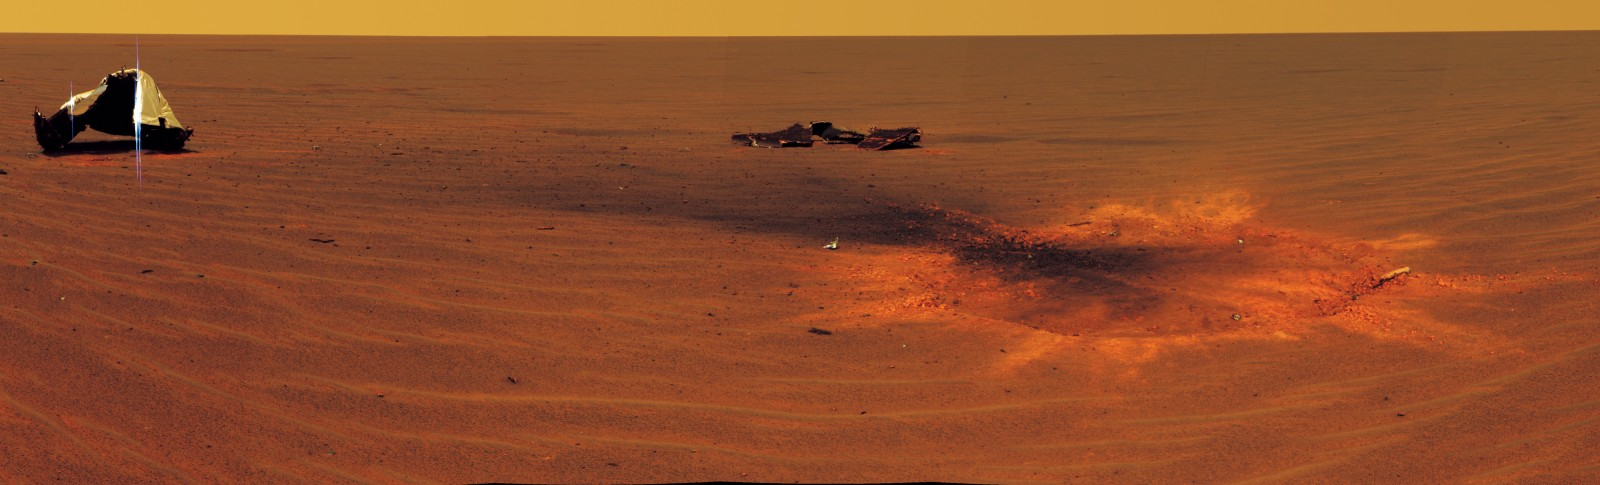 An extraterrestrials that land on Mars will be in no doubt that they have encountered signs of alien intelligence. This picture is taken by the Rover Opportunity as it circles some detritus, including a heat shielf beside an impact-crater of its own landing on Mars. Opportunity also encountered rocks formed out of sulphate salts, confirming that salt-laden seas were once a feature of this apparent wasteland.